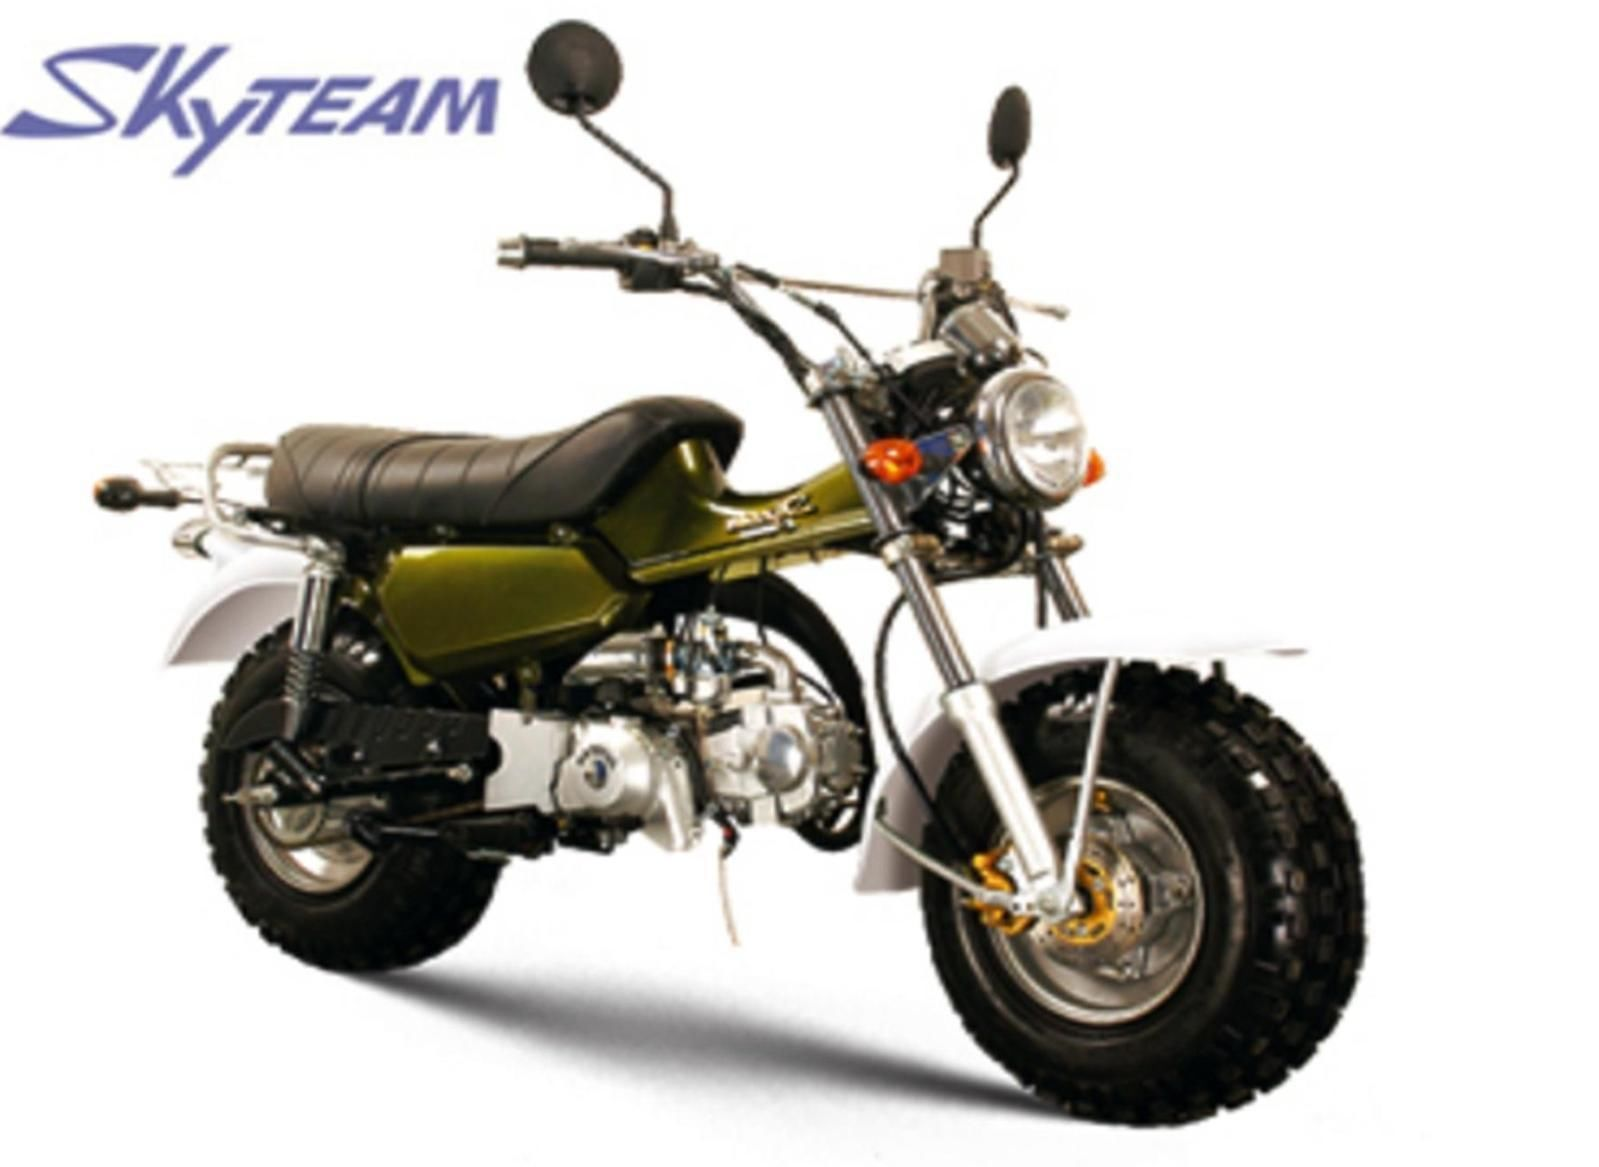 skyteam t rex 50 moped new 50cc based on suzuki rv125 sand bike 4 jpg 1599 1167 my board 9. Black Bedroom Furniture Sets. Home Design Ideas